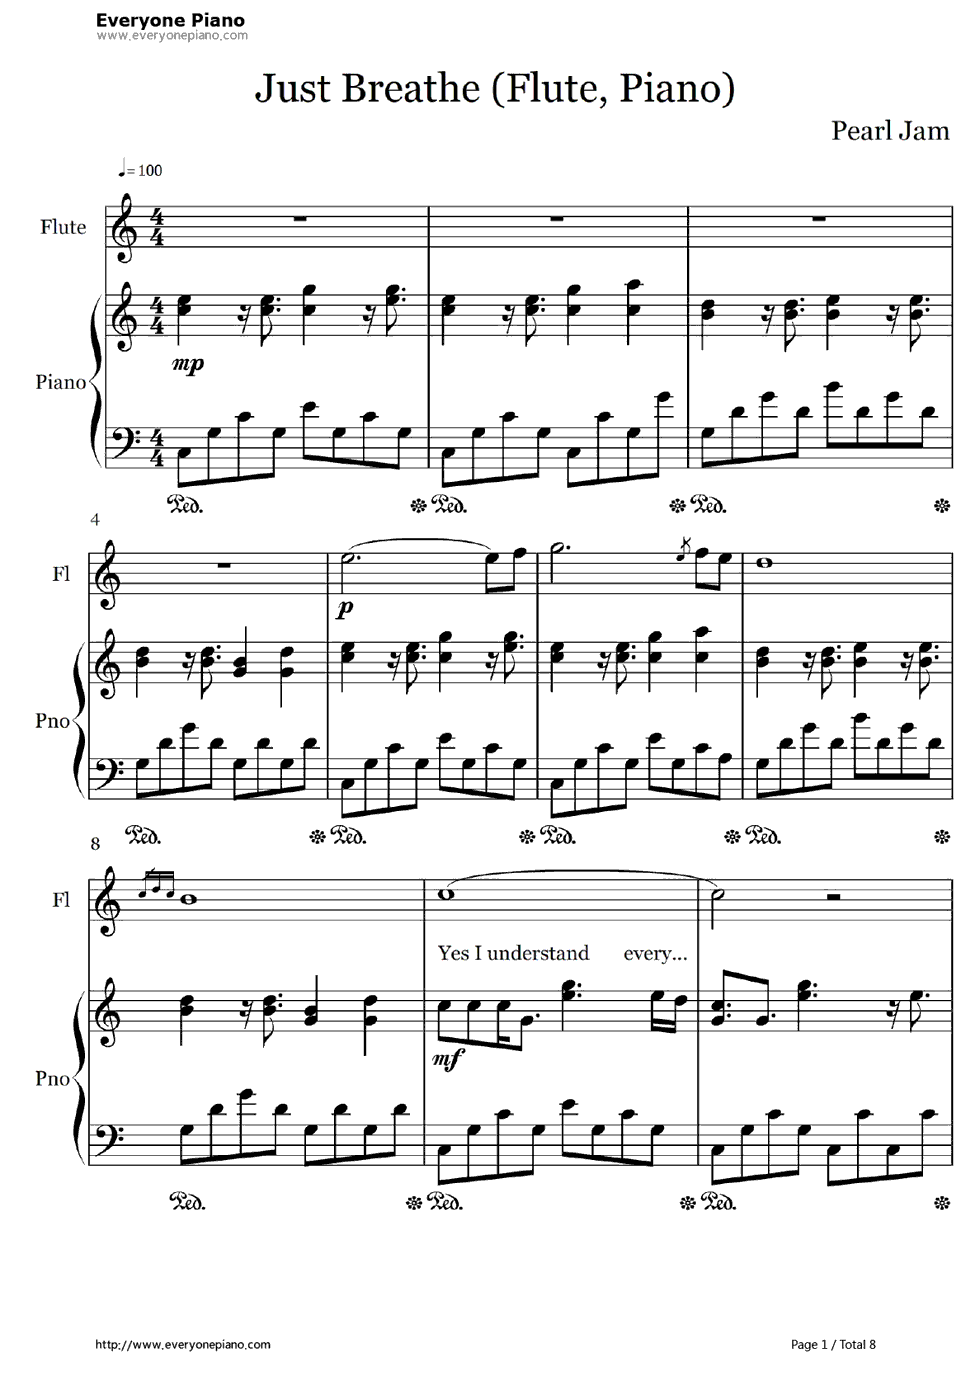 Just breathe pearl jam stave preview 1 free piano sheet music listen now print sheet just breathe pearl jam stave preview 1 hexwebz Choice Image